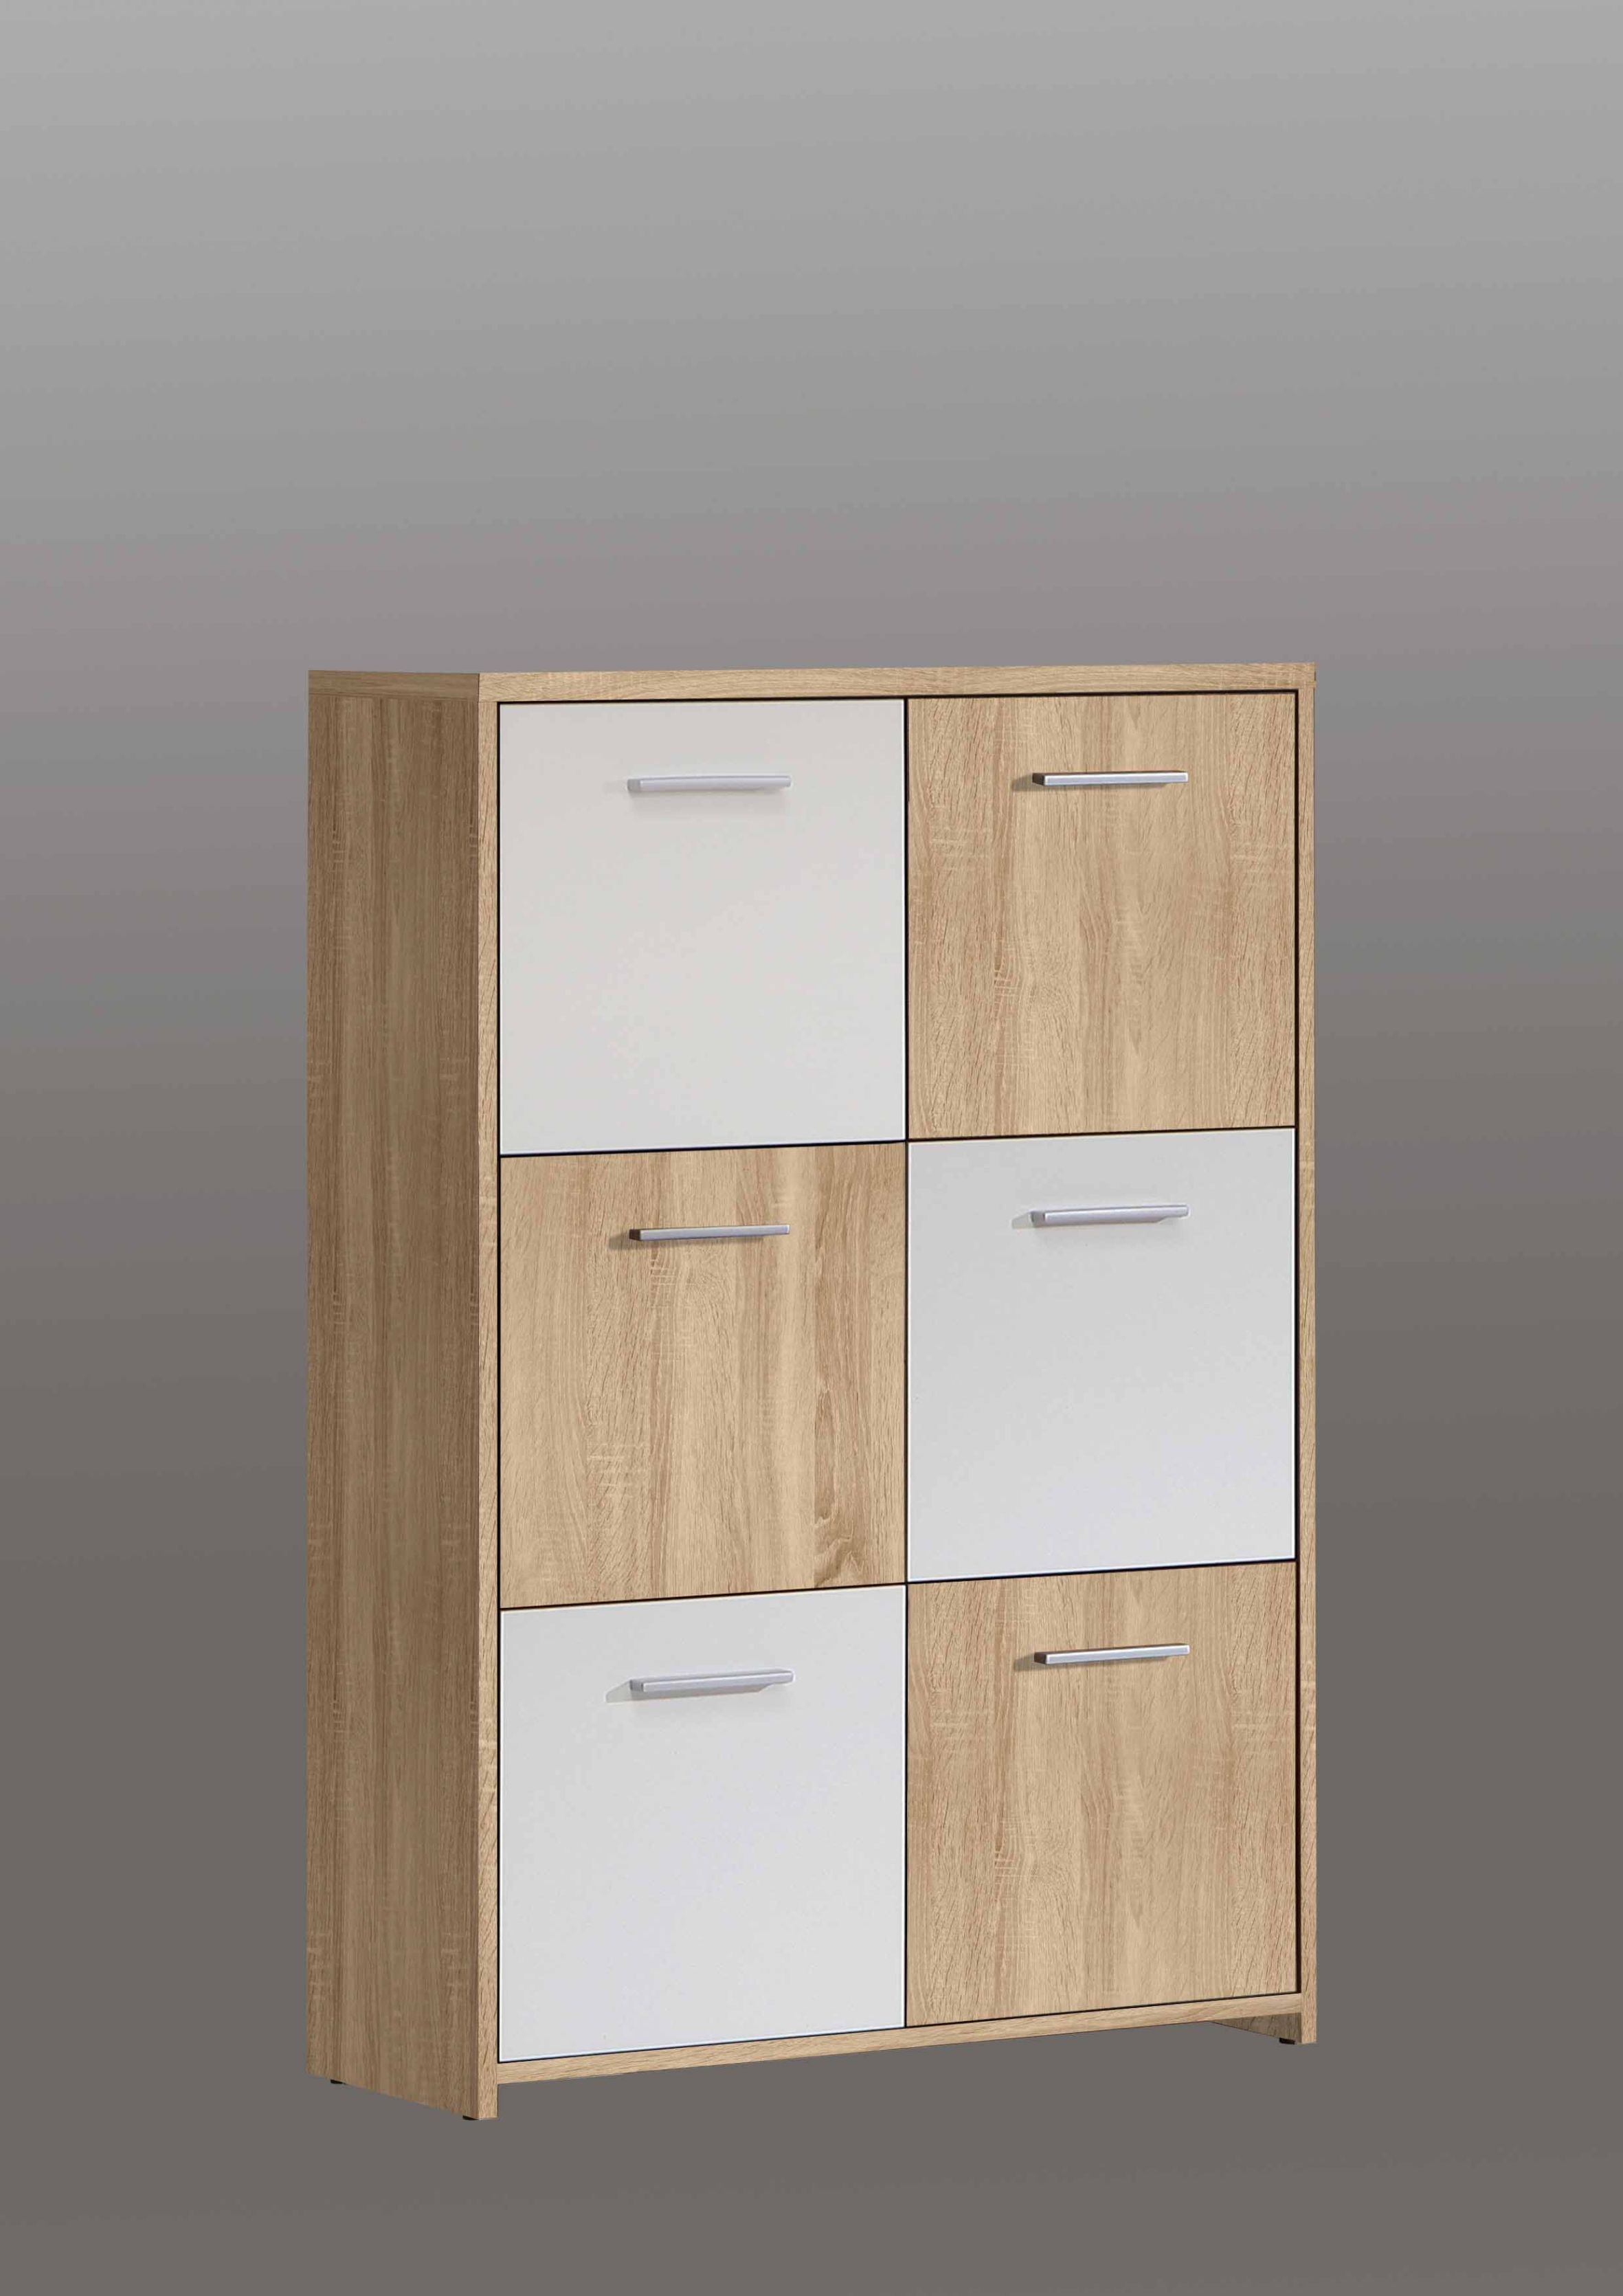 Highboard Esszimmer Quadro Highboard Für Esszimmer Kommode